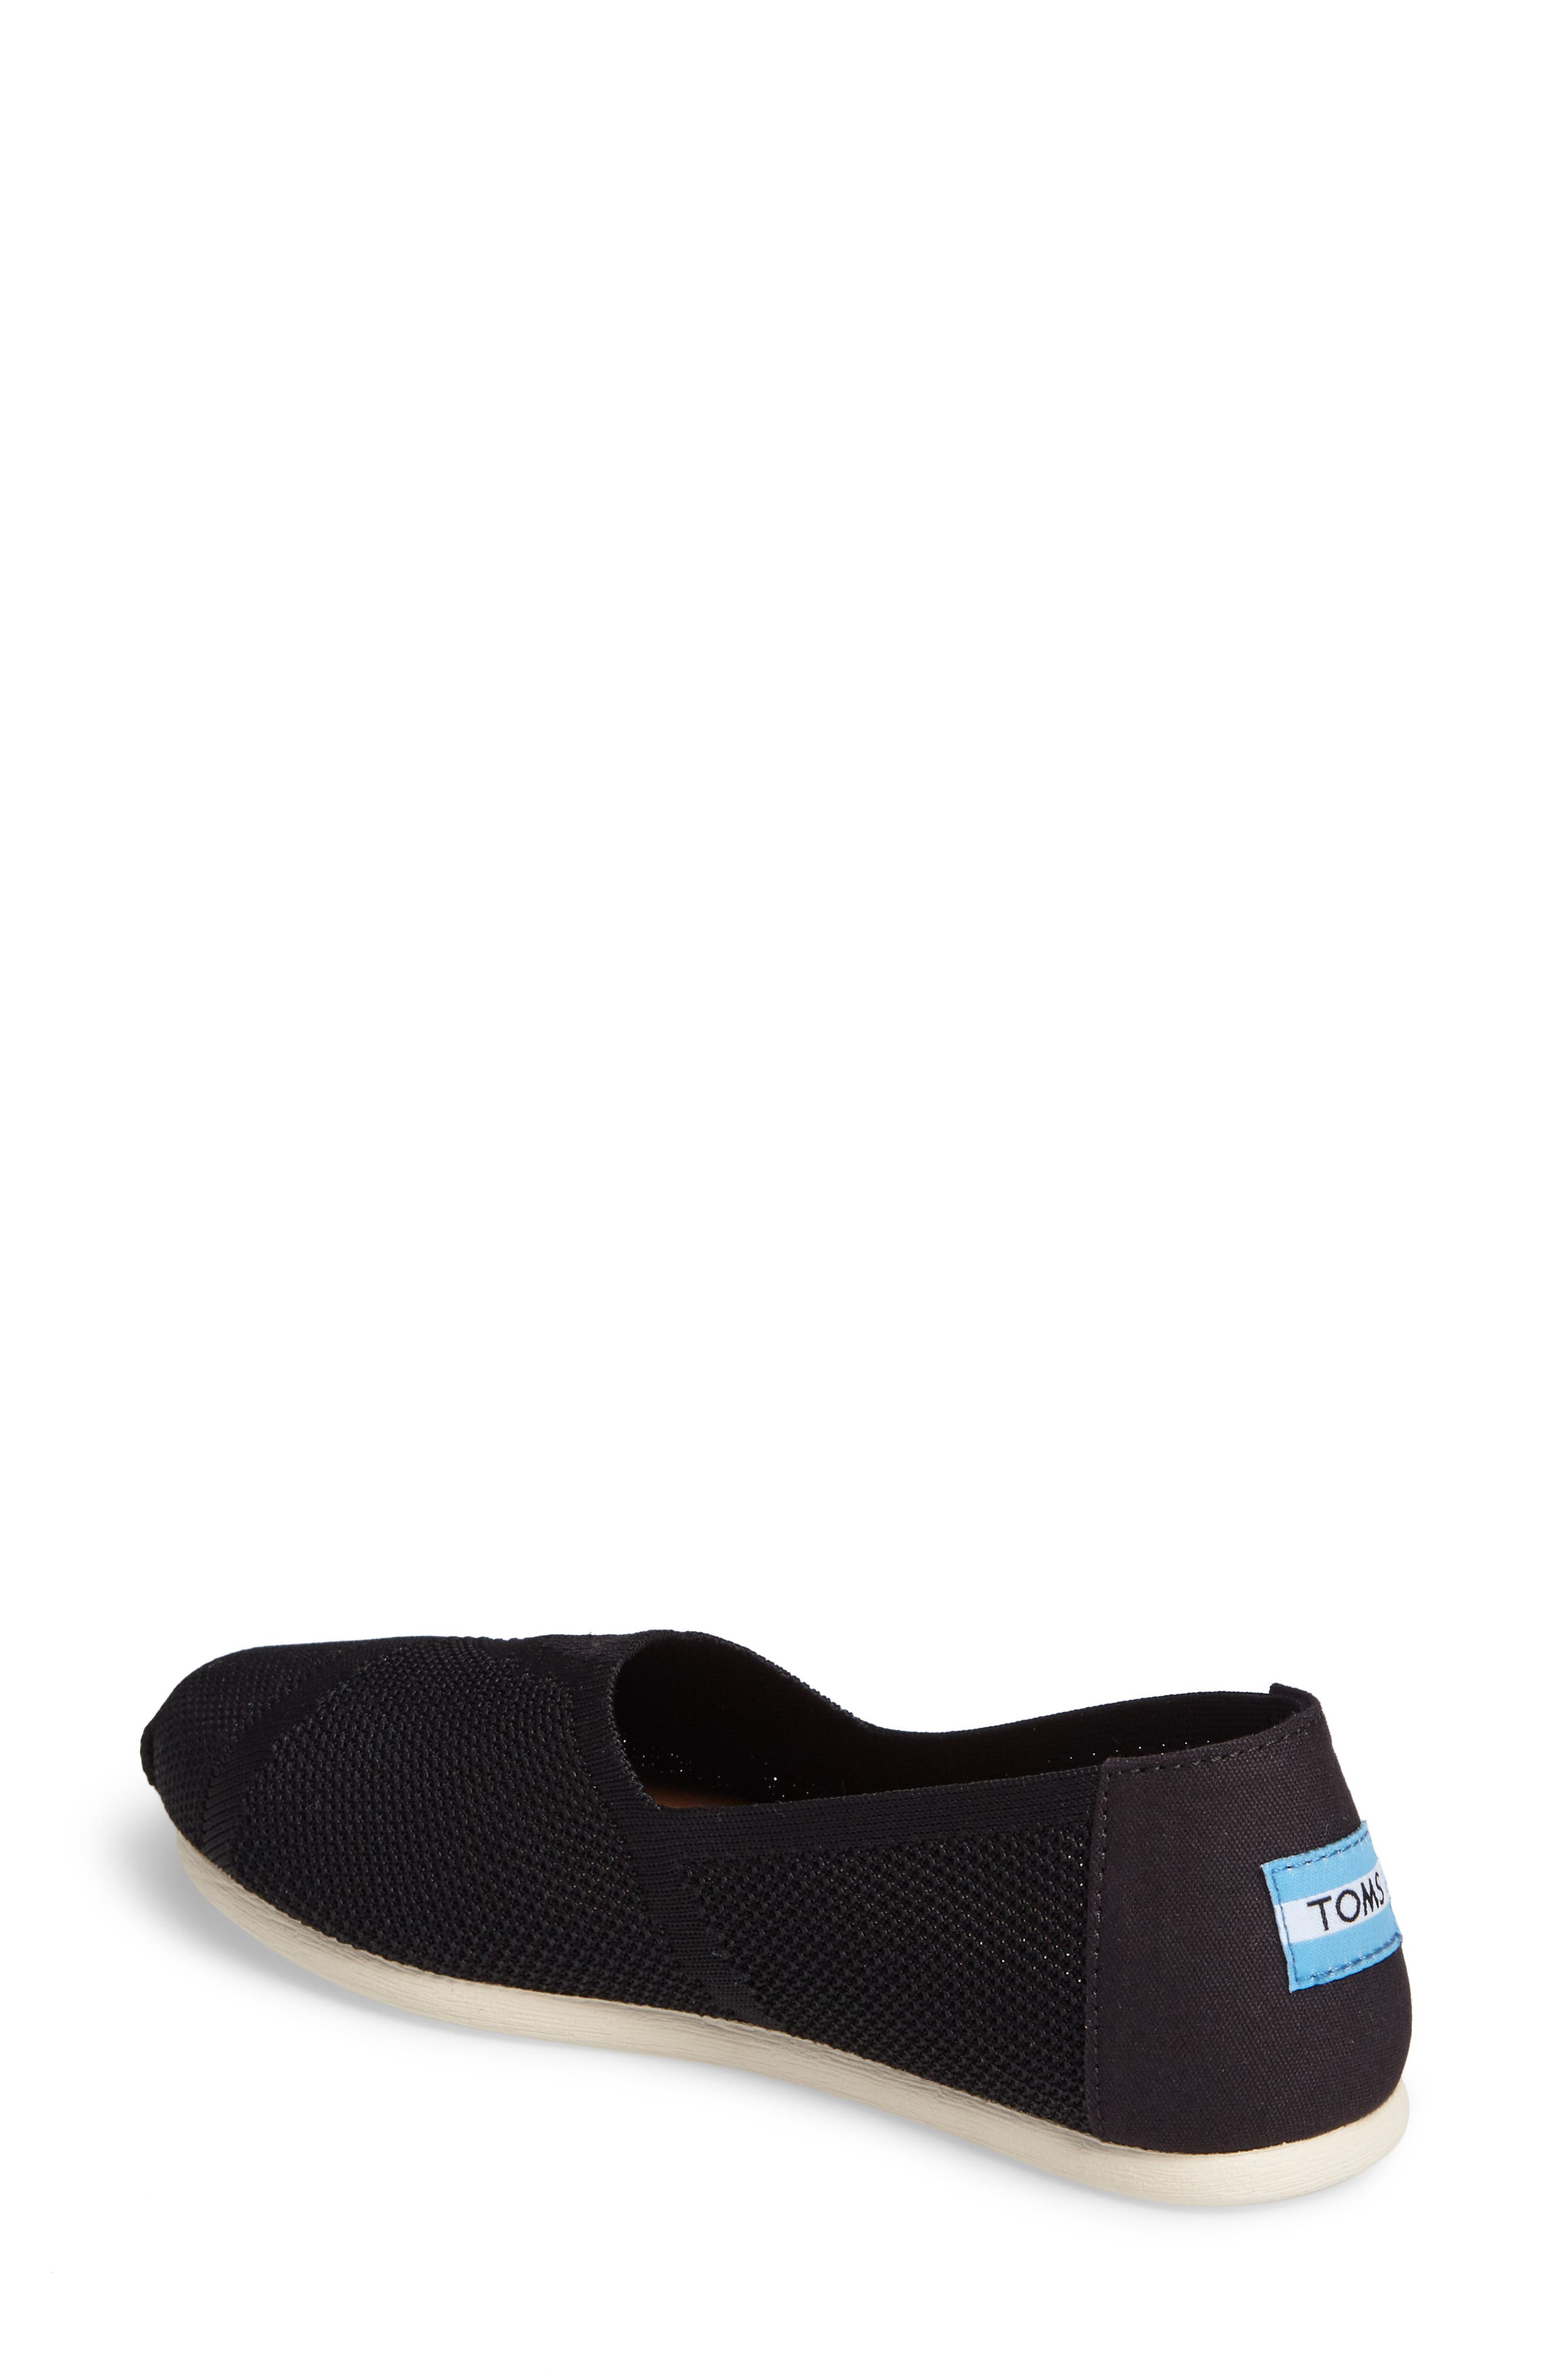 Alternate Image 2  - TOMS Alpargata Knit Slip-On (Women)